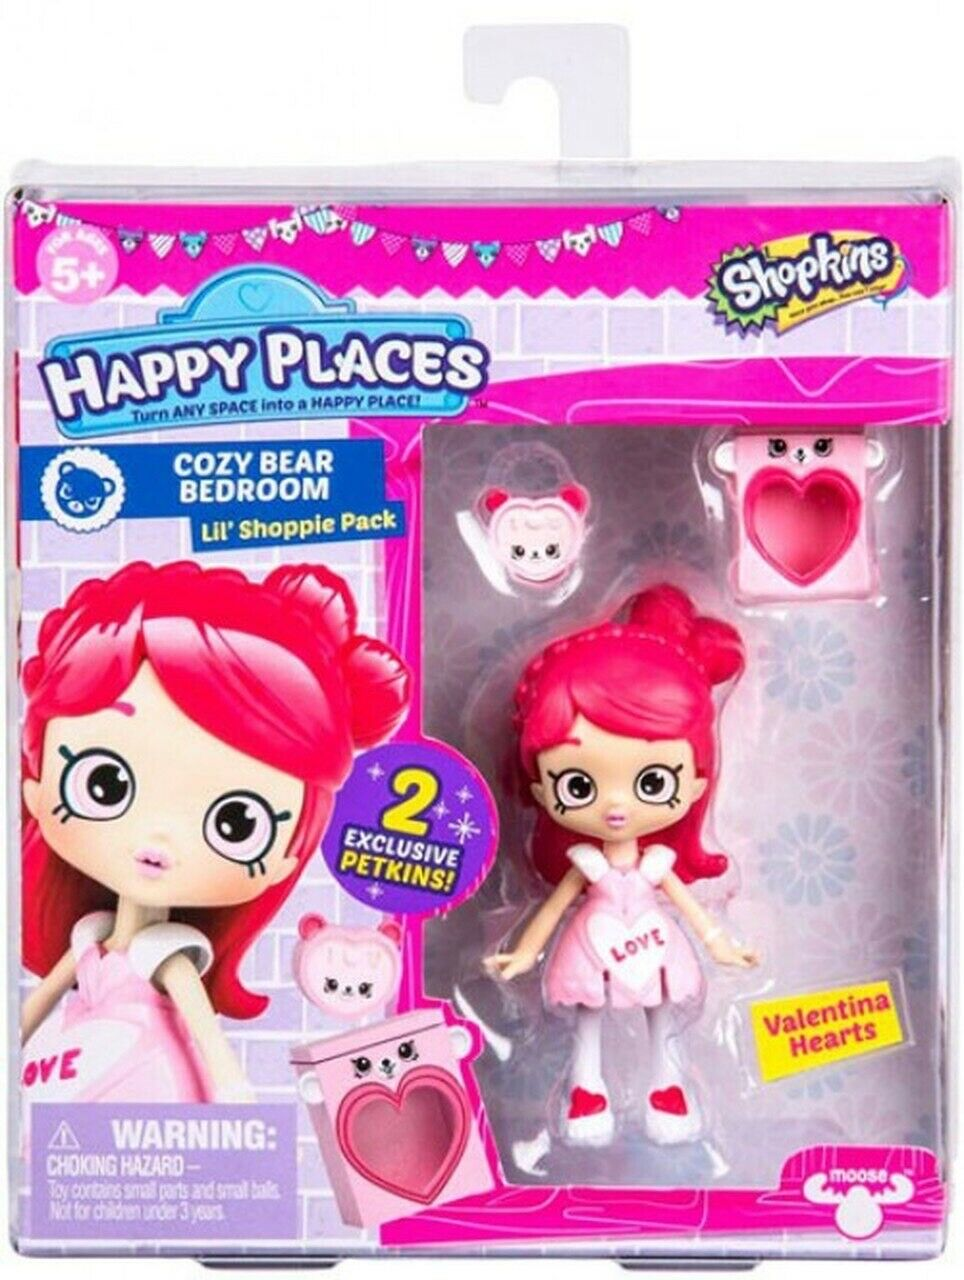 Shopkins Happy Places Welcome Pack Dreamy Bear For Sale Ebay